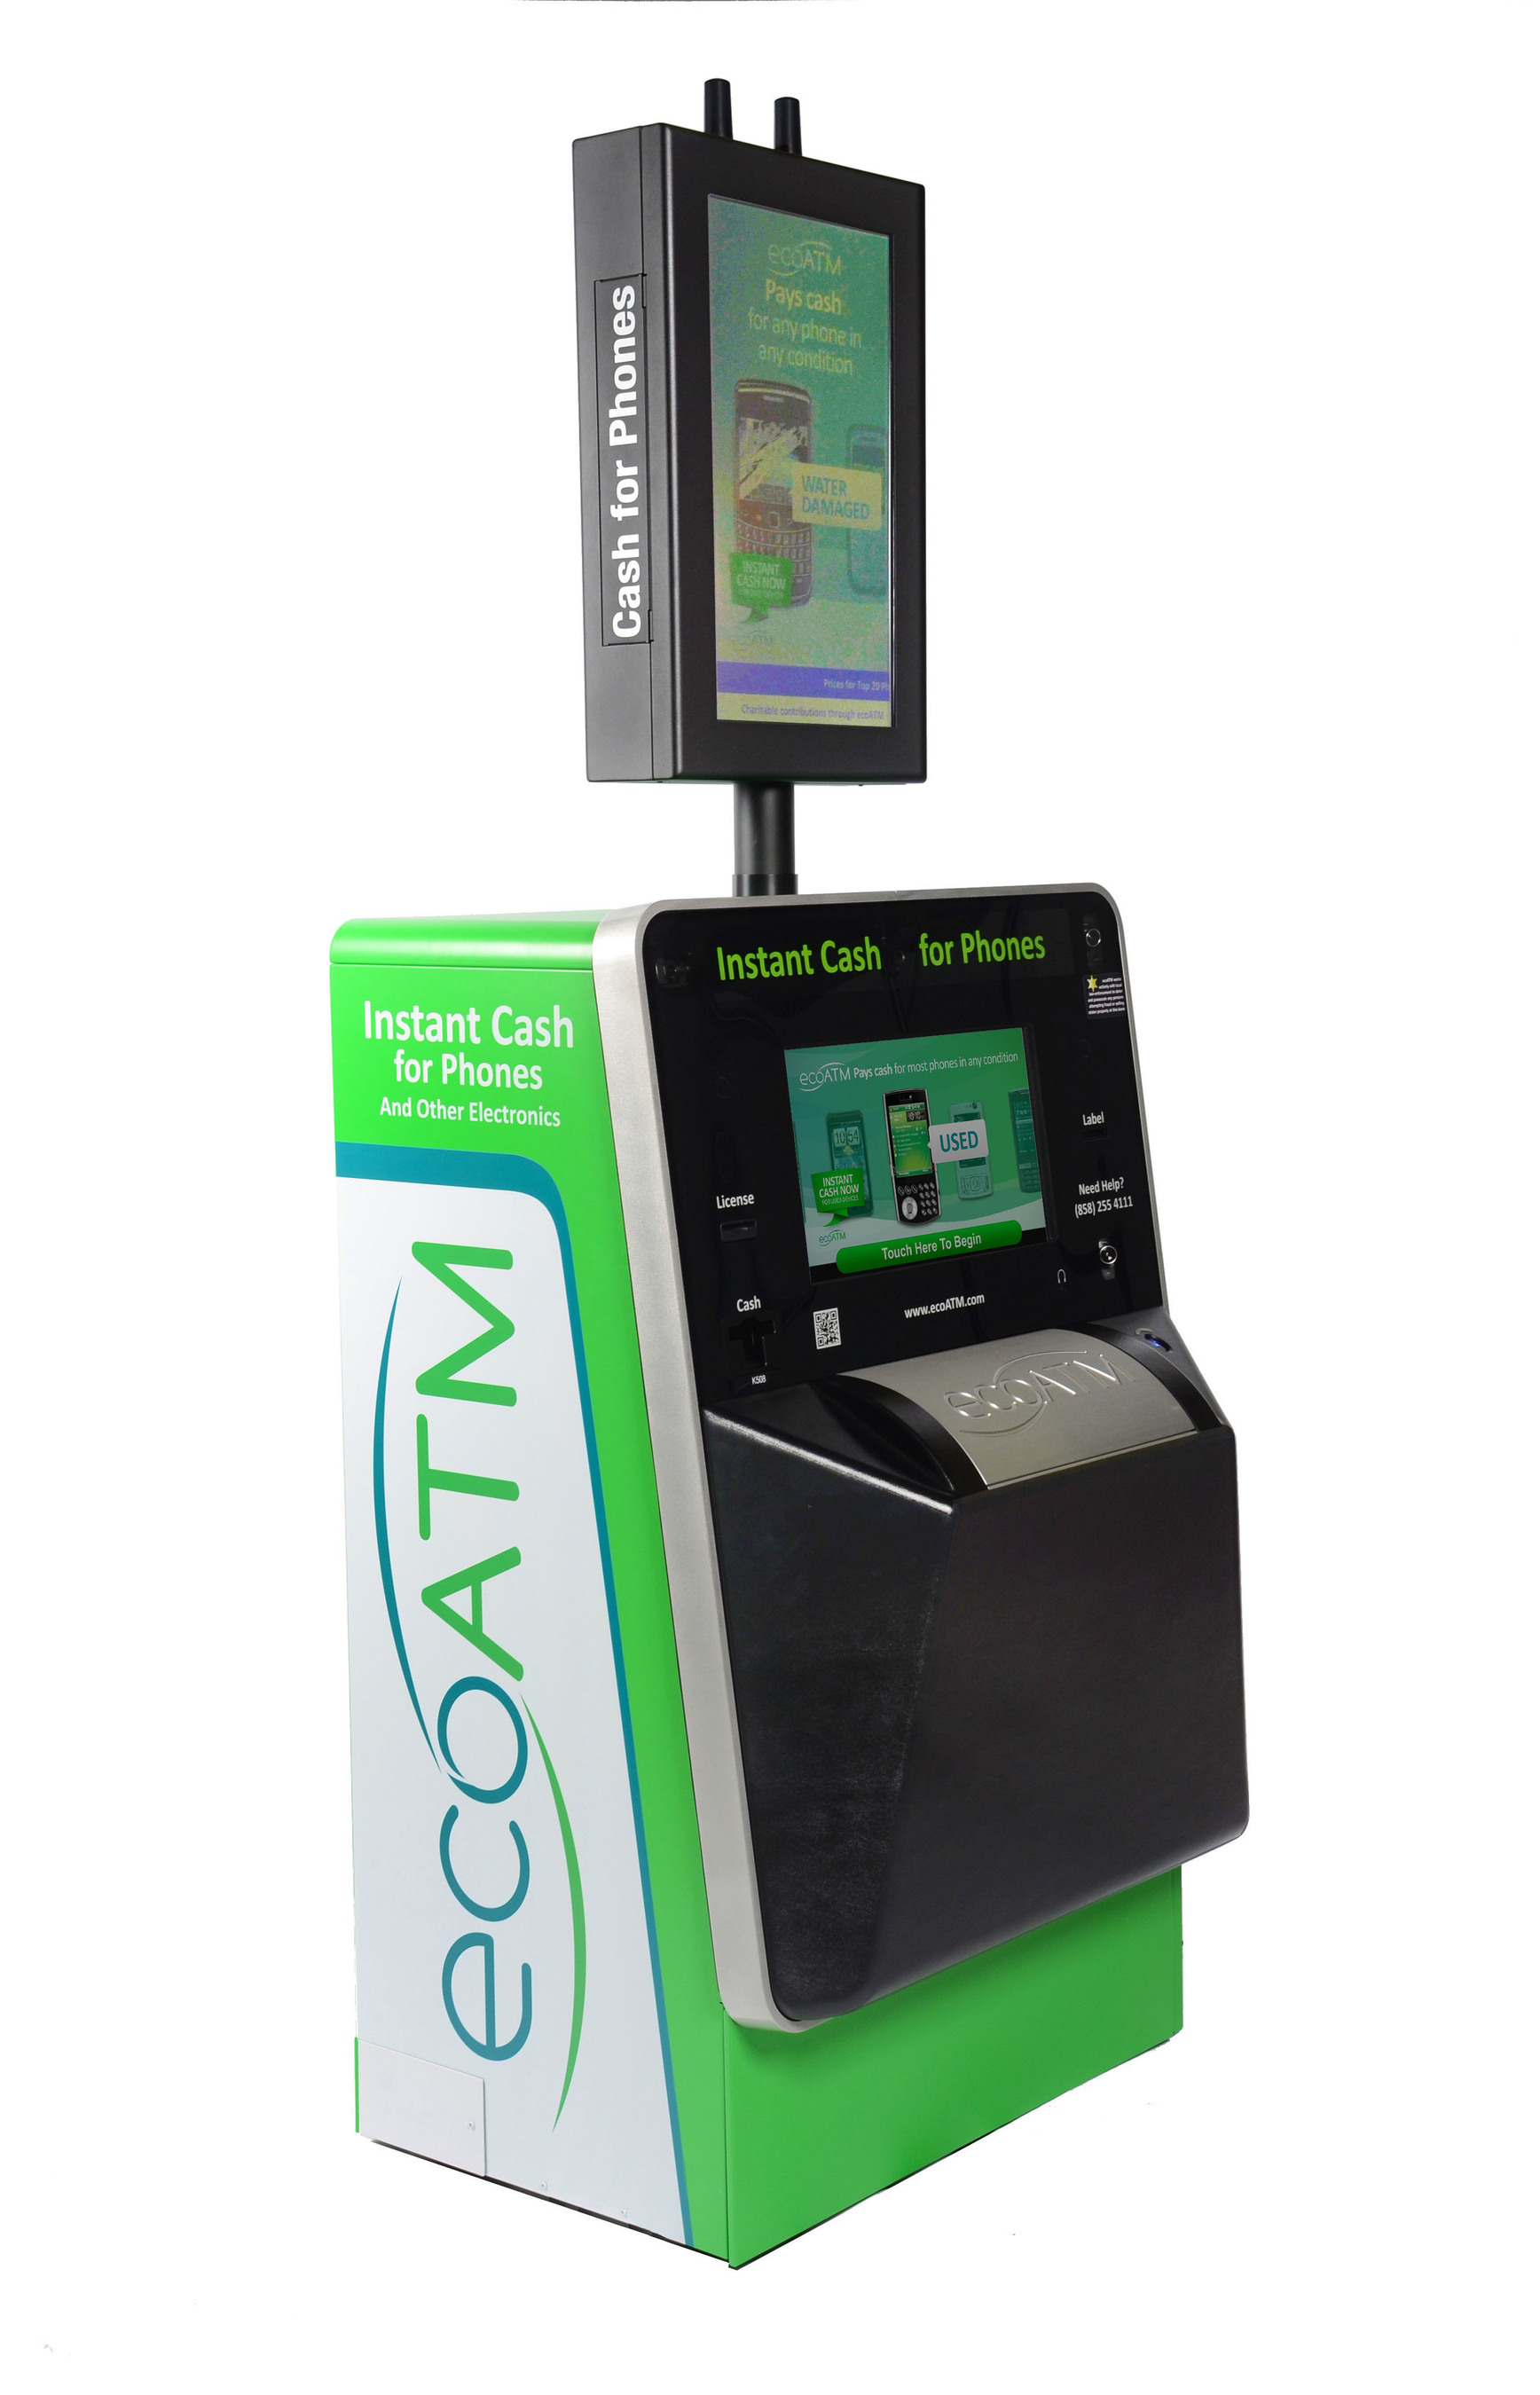 ecoATM survey reveals less than half of device owners would consider recycling unwanted phones, tablets and MP3 players. (PRNewsFoto/ecoATM) (PRNewsFoto/ECOATM)